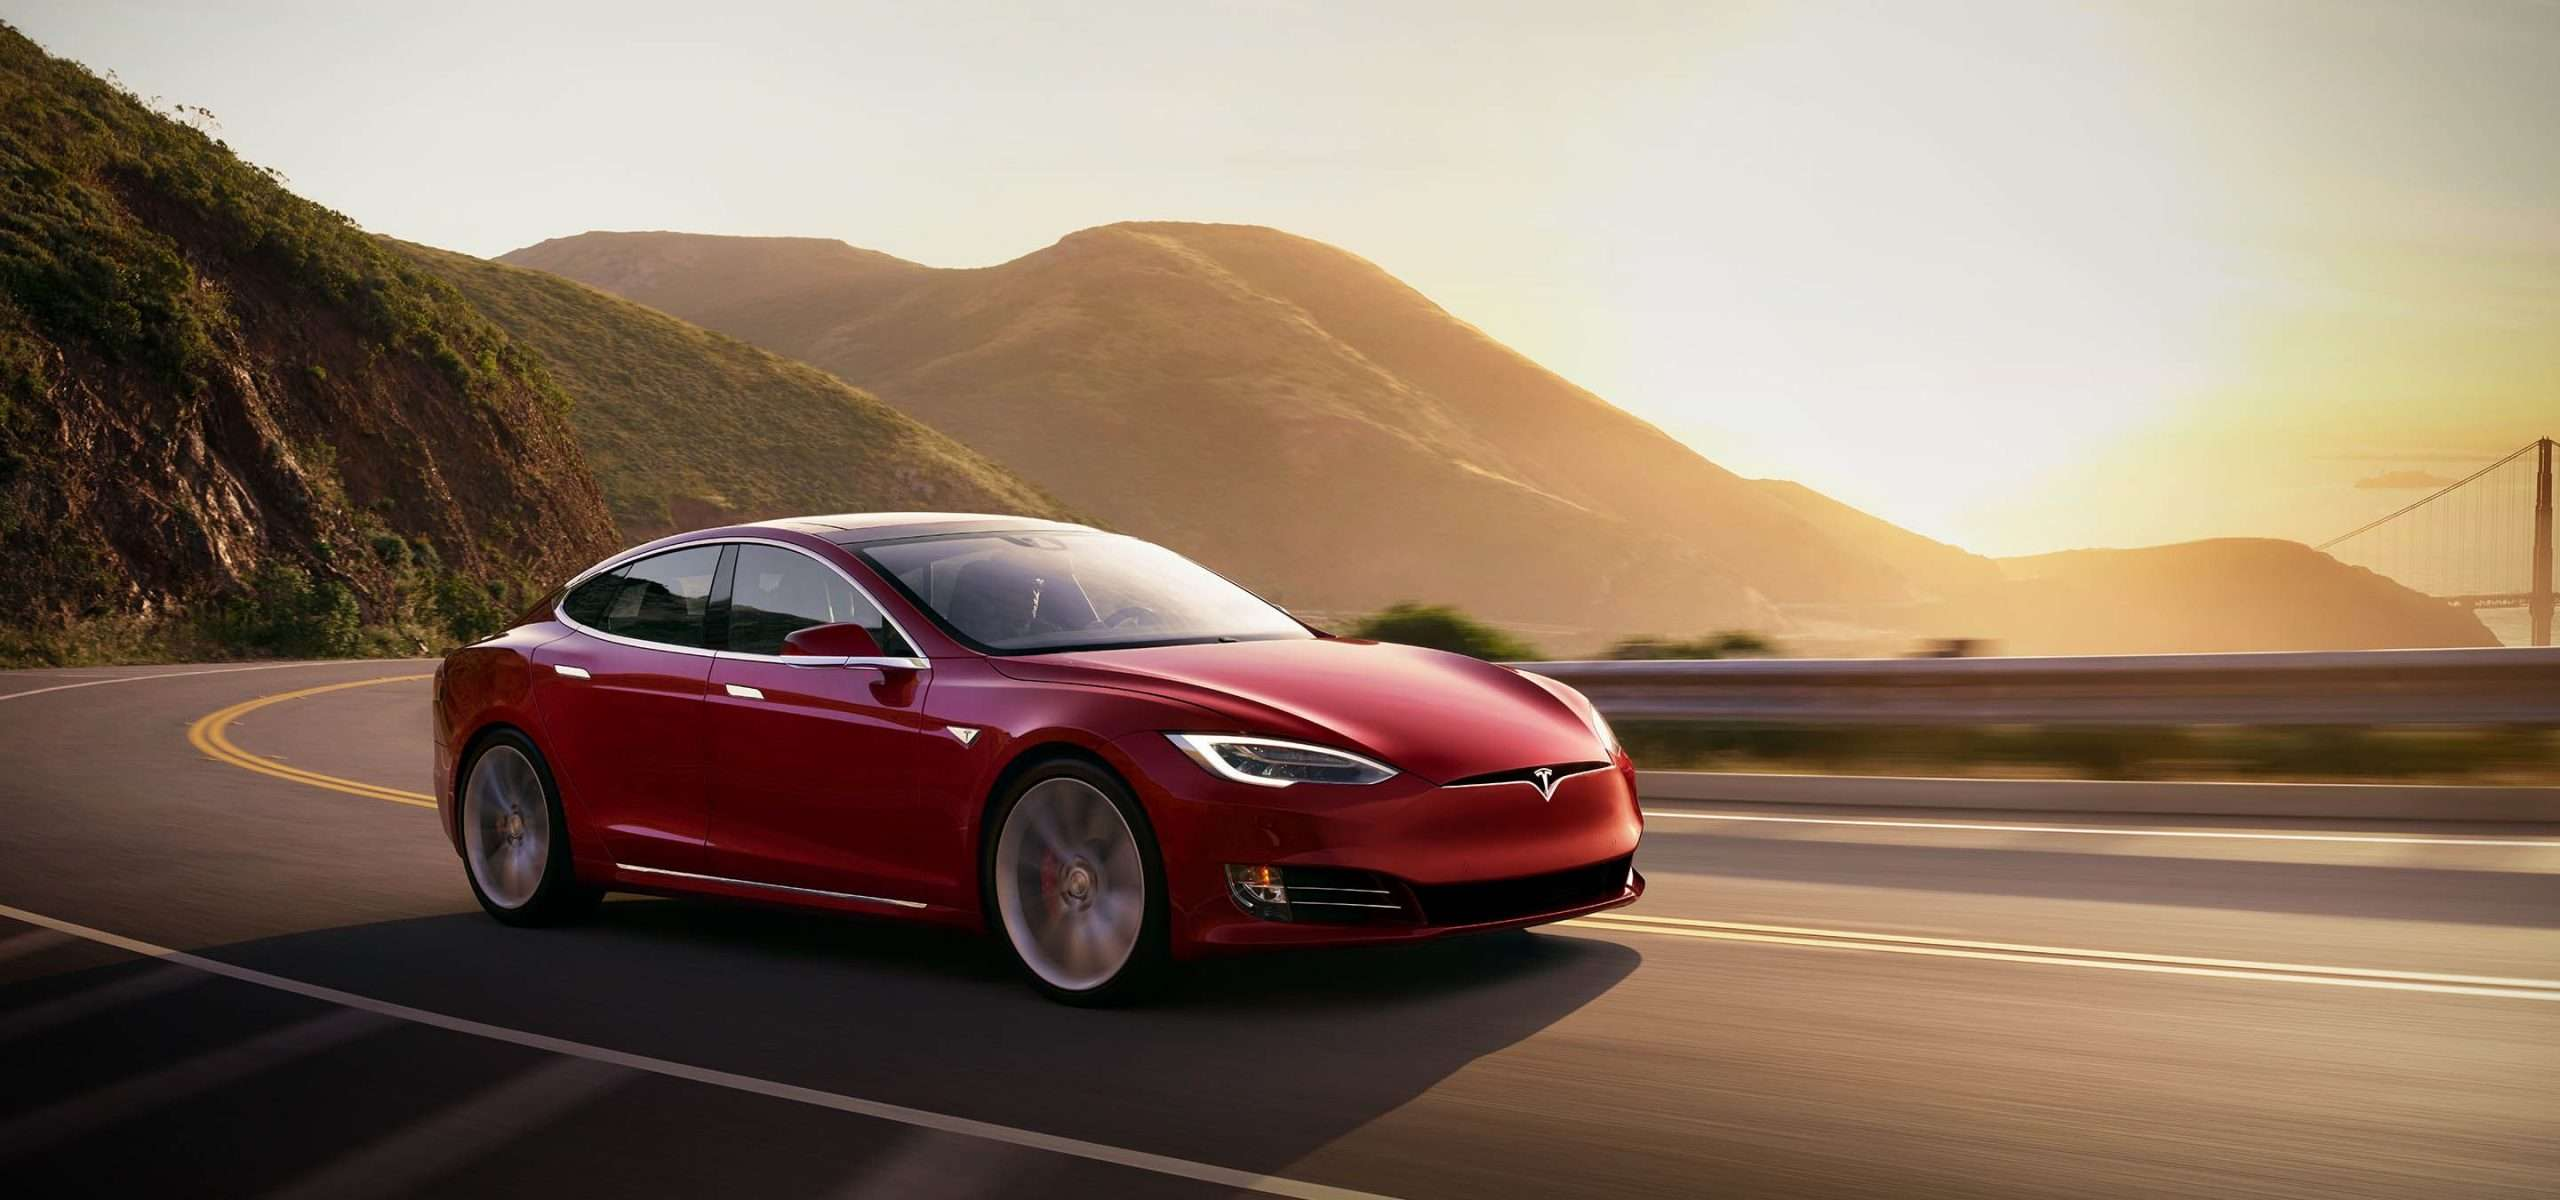 Tesla Model S - Best Electric Cars